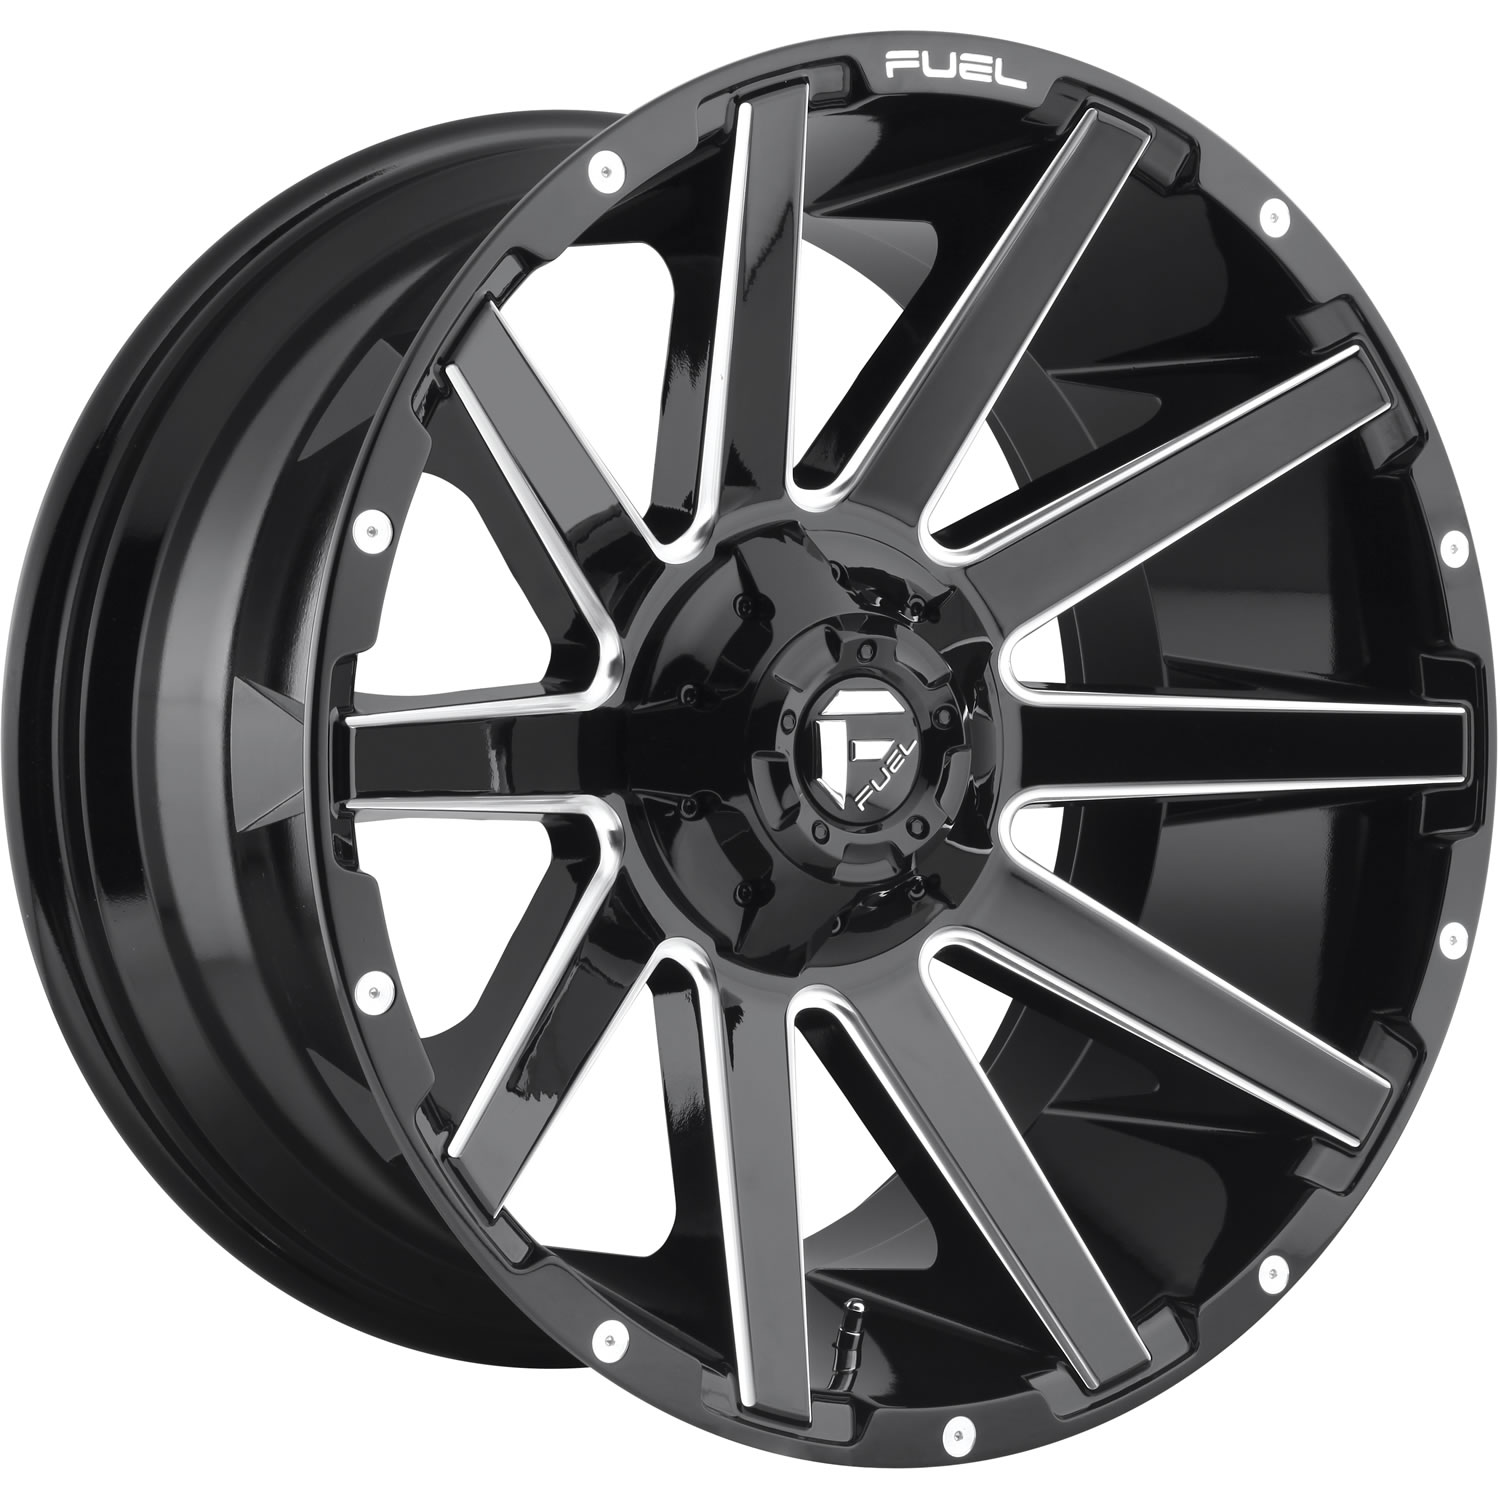 Fuel Contra Gloss Black with Milled Spoke Edges 20x9 2